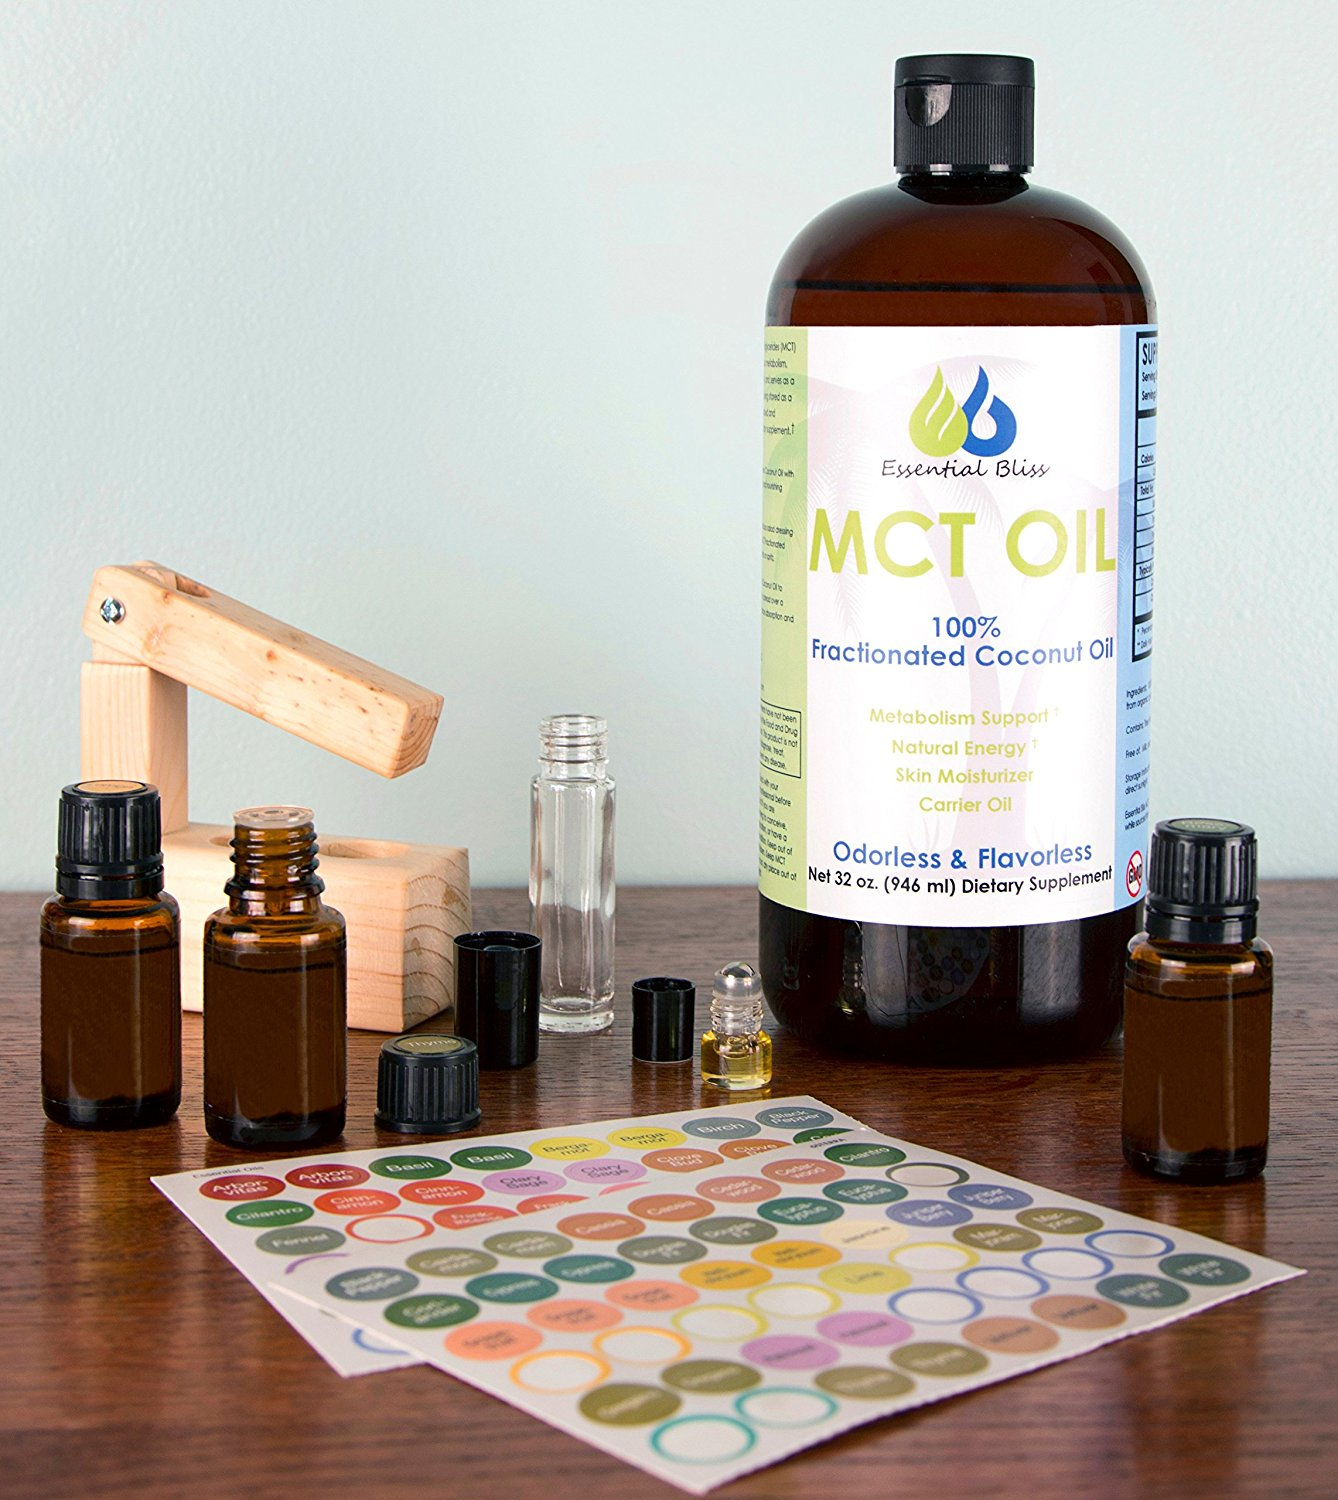 TOPICAL Carrier Oil - Essential Bliss MCT (Medium-chain Triglyceride) may be used with essential oils topically for essential oil rollers, sprayers, salves, etc. Essential oils absorb best with the use of a topical carrier oil by slowing the absorption and increasing the duration of the desired therapeutic effect through the skin. Using a carrier oil also provides a safer way to apply an essential oil to children, sensitive, or aging skin for effective diluting and moisturizing.INGESTIBLE Carrier Oil: Essential Bliss MCT may be ingested to help slow the absorption rate and lengthen the duration of benefit when taking essential oils by mouth as well. When ingesting, only use high quality essential oils with an FDA supplemental facts usage label identifying it as an ingestible product. There is no coconut flavor or smell to the Essential Bliss MCT Oil which provides a smooth hot or cold drink, gargle, spray, etc. by mouth. MCT may be added to empty veggie capsules to assist the digestive process of an essential oil. MCT also calms oil burps and eses the bite of a spicy, hot, or strong flavored essential oil. Remember to always use glass or stainless steel container, utensil, and/or straw when using MCT for drinking.